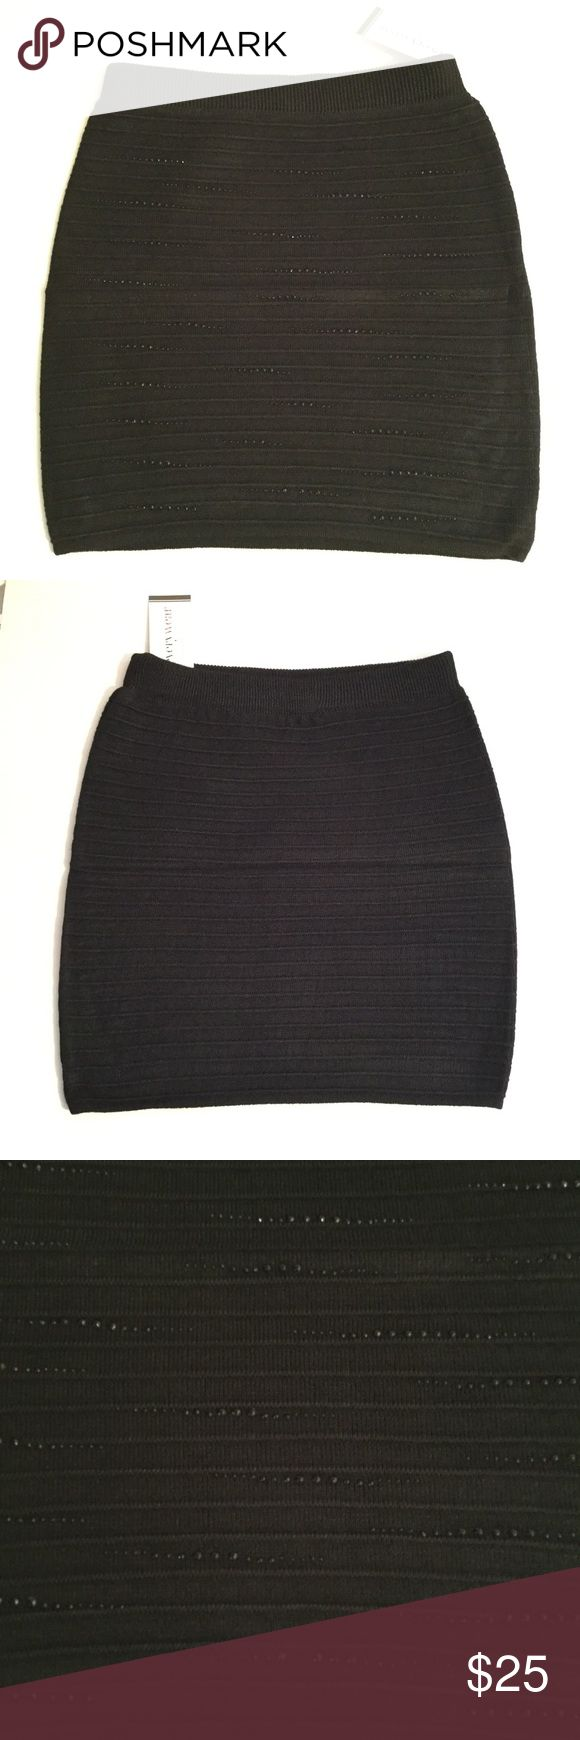 """SUBMIT OFFER  Black Mini Skirt Brand new with tag. Size small. Stretchy fit. Small beading on front. Length approx 14.5"""". Elastic waistband. Polyester/spandex blend. iConcepta Boutique Skirts Mini"""